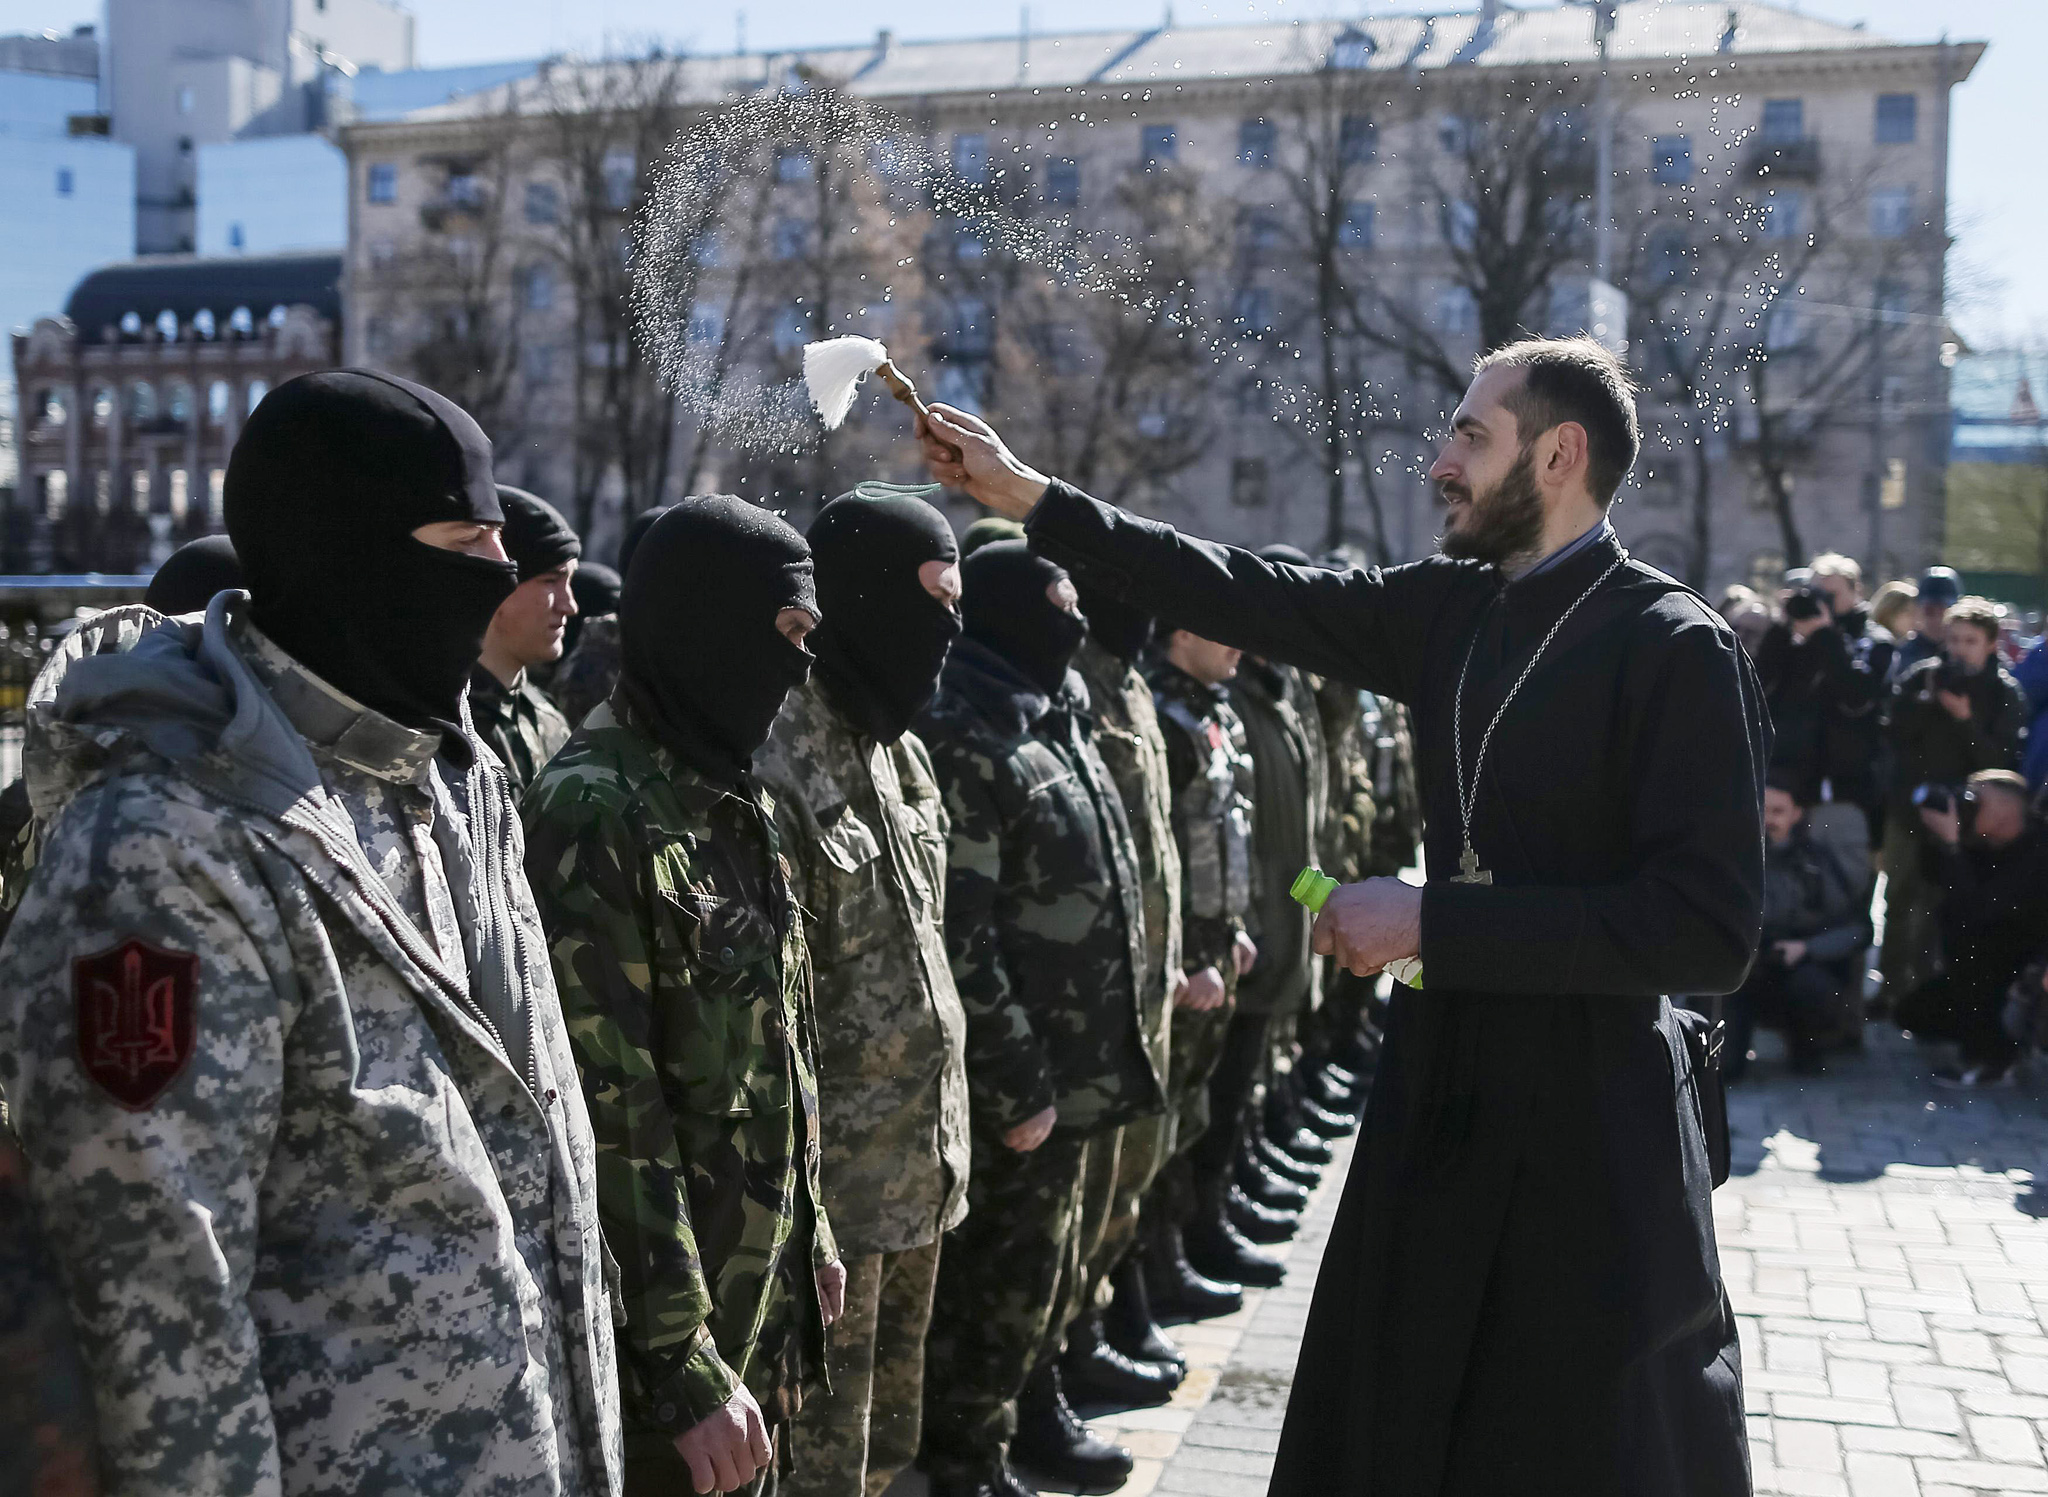 A priest sprinkles holy water on members of the Organization of Ukrainian Nationalists (OUN) before they depart to the frontline in eastern Ukraine, in central Kiev...A priest sprinkles holy water on members of the Organization of Ukrainian Nationalists (OUN) before they depart to the frontline in eastern Ukraine, in central Kiev, March 17, 2015. Three Ukrainian servicemen have been killed in fighting in the east of Ukraine in the past 24 hours despite a ceasefire agreement with Russian-backed rebels, a Kiev military spokesman said on Tuesday.  REUTERS/Gleb Garanich  (UKRAINE - Tags: POLITICS CIVIL UNREST CONFLICT RELIGION)